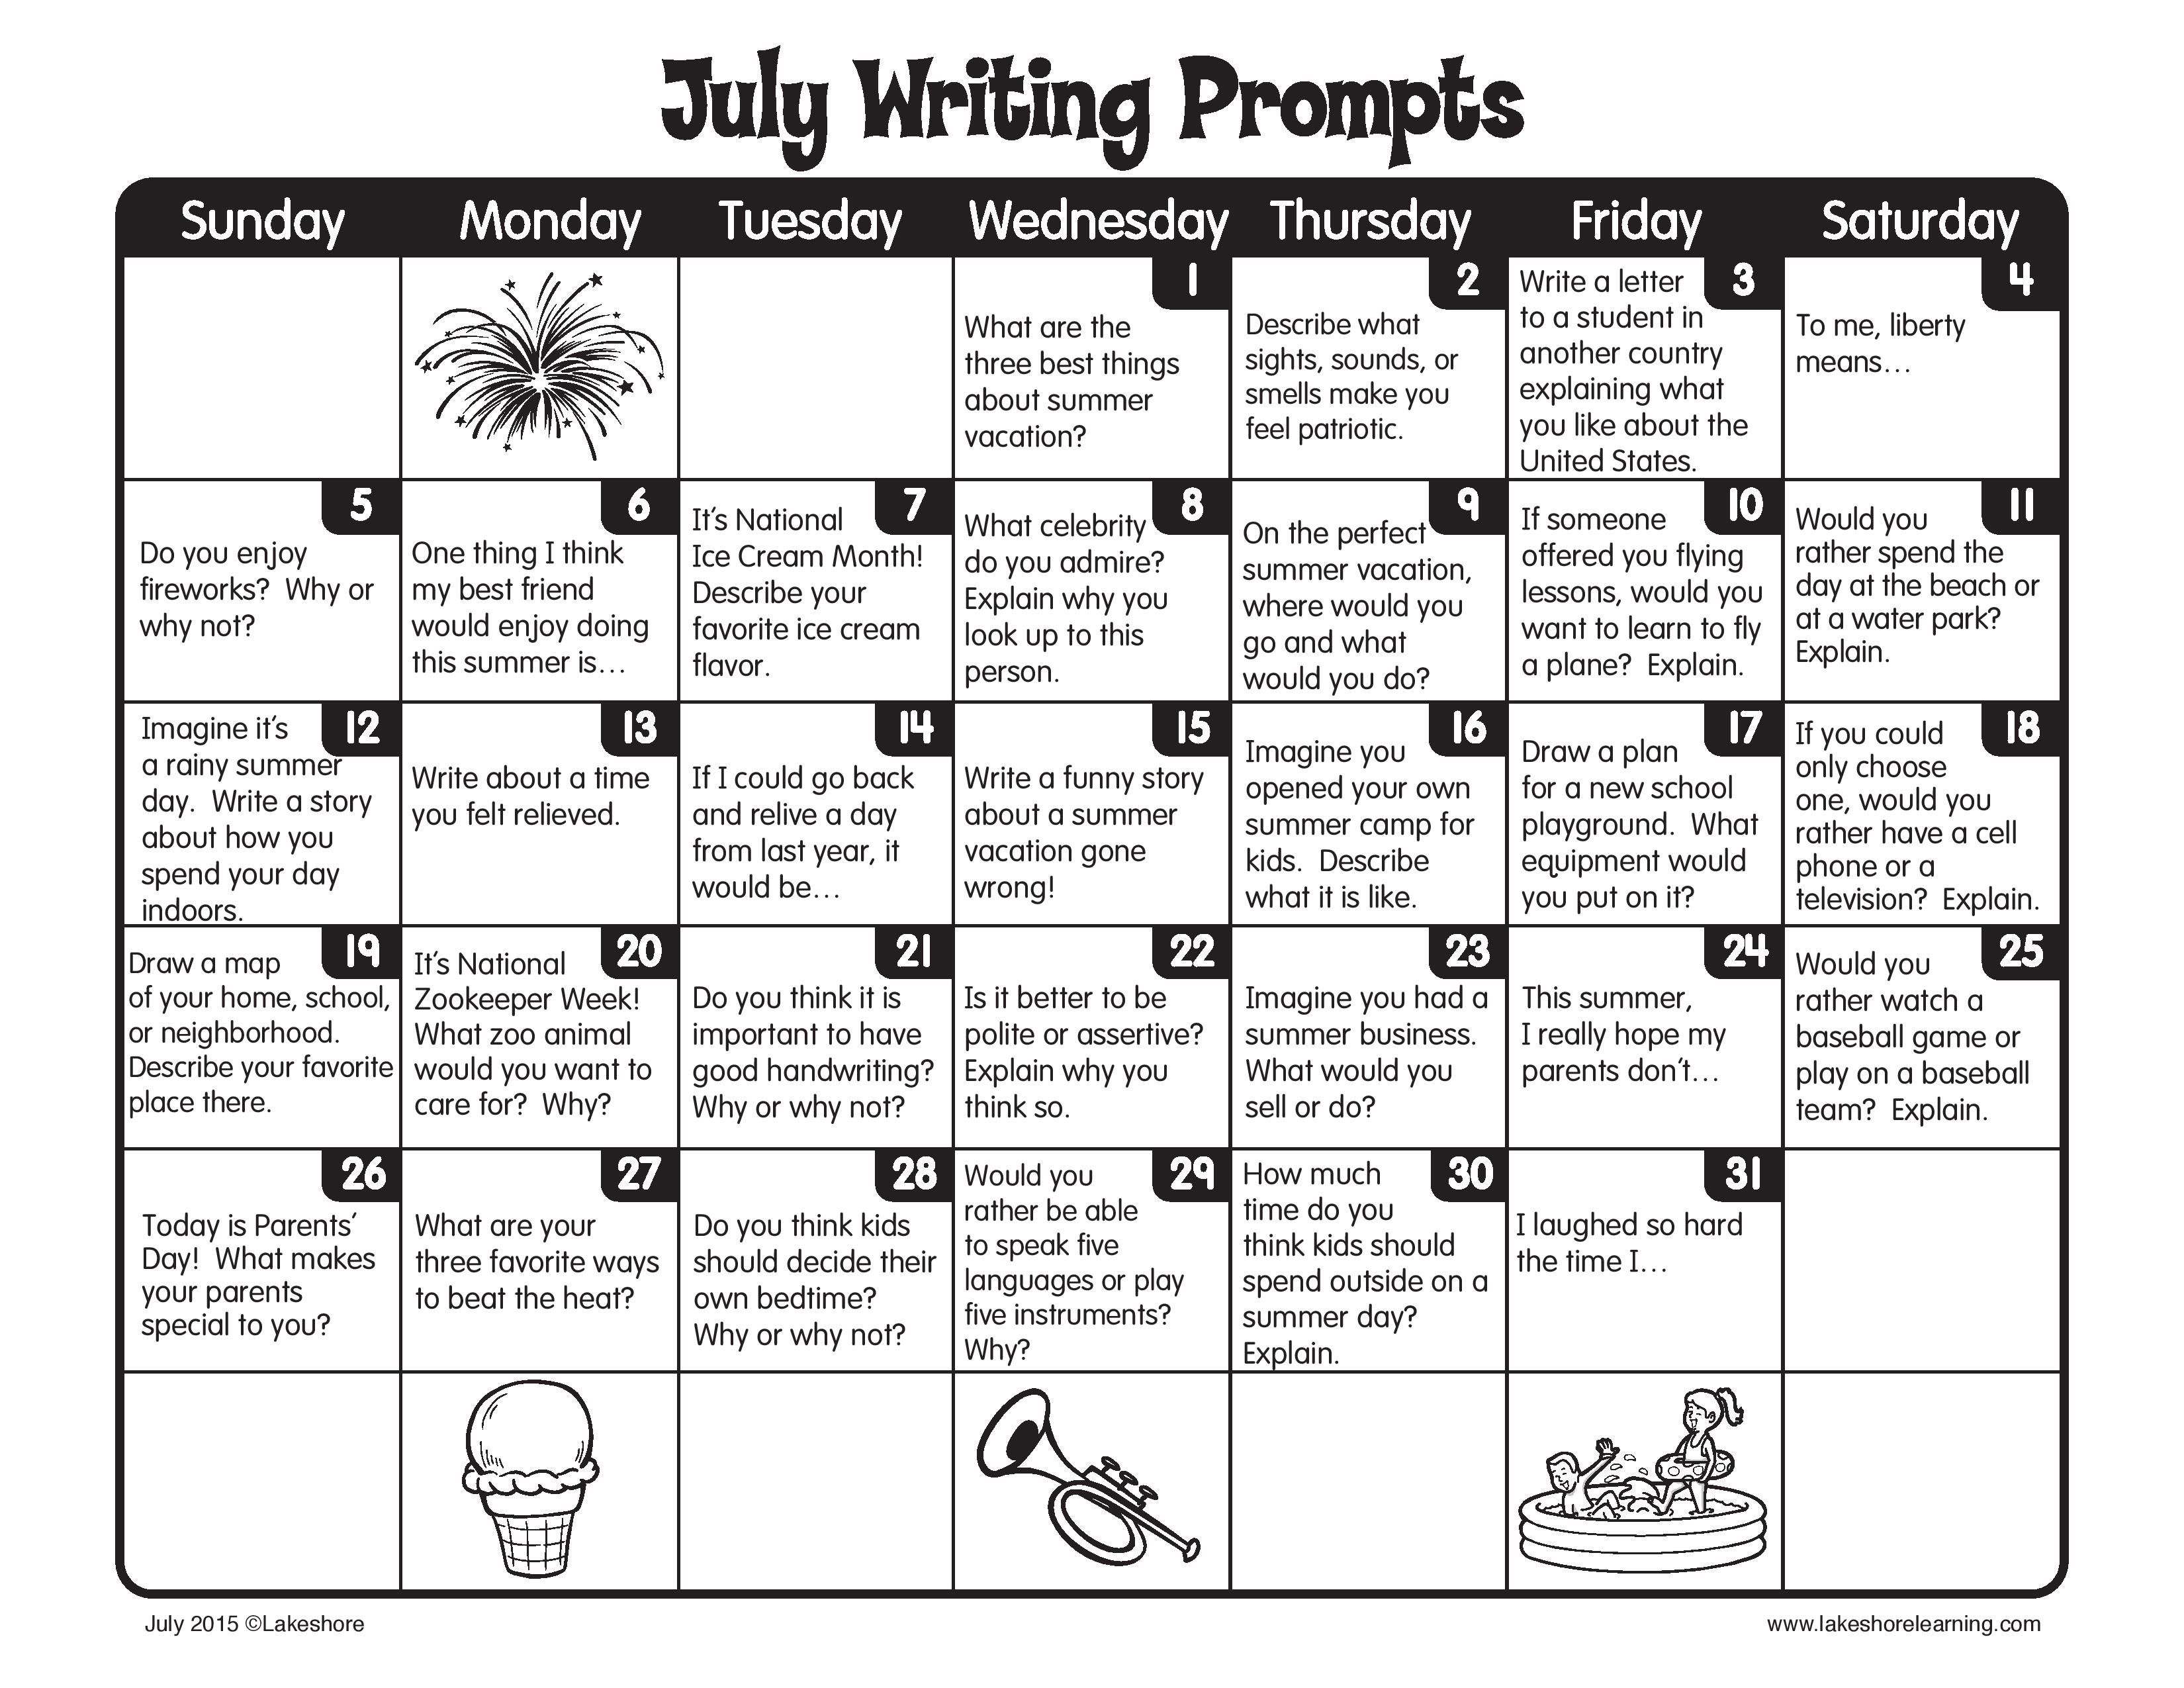 Keep up the daily writing this summer with our July writing prompts ...